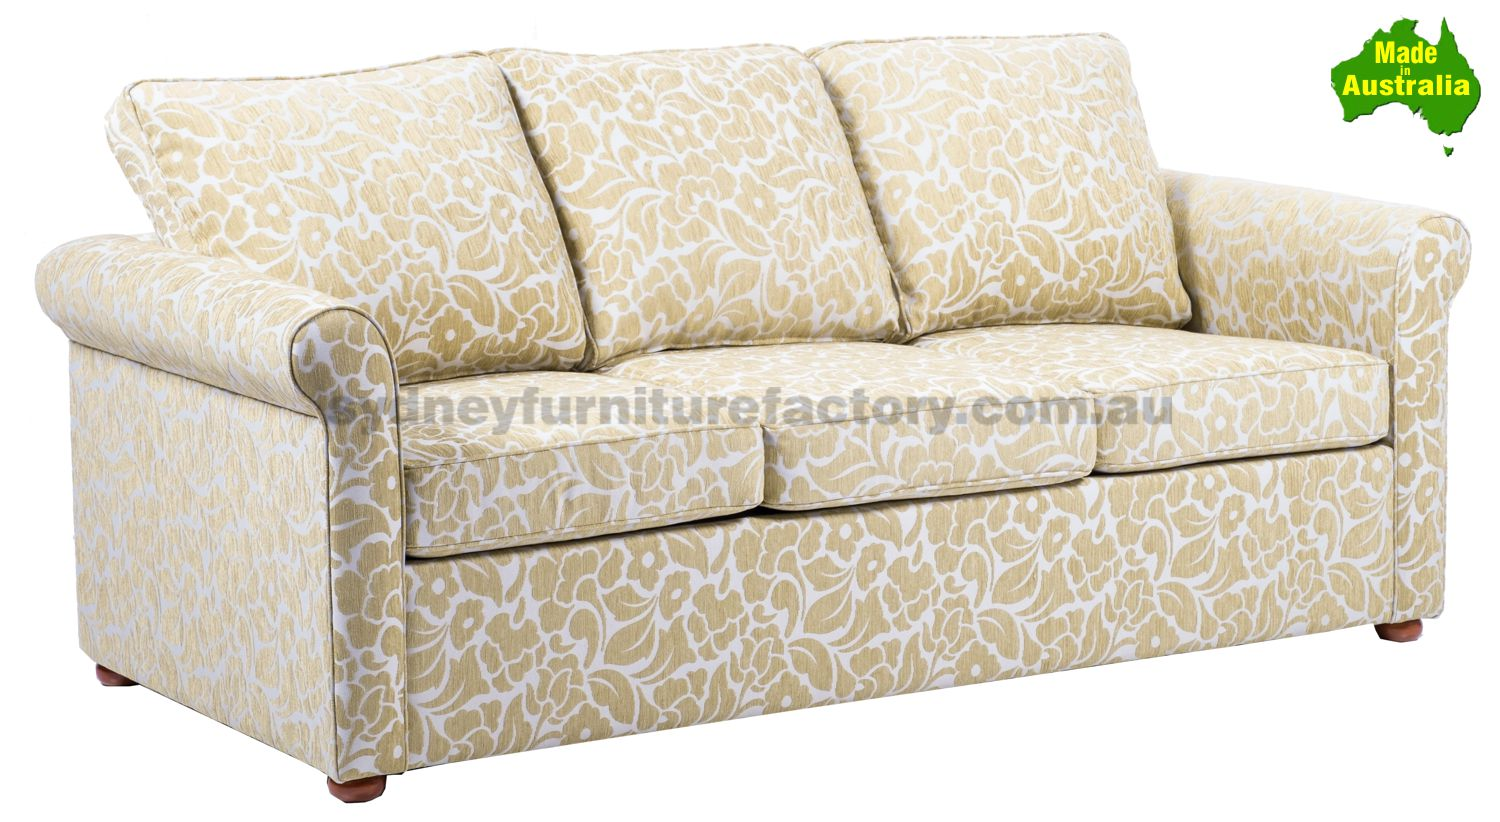 Oxford queen size sofa bed with gel inner spring mattress for Spring sofa bed